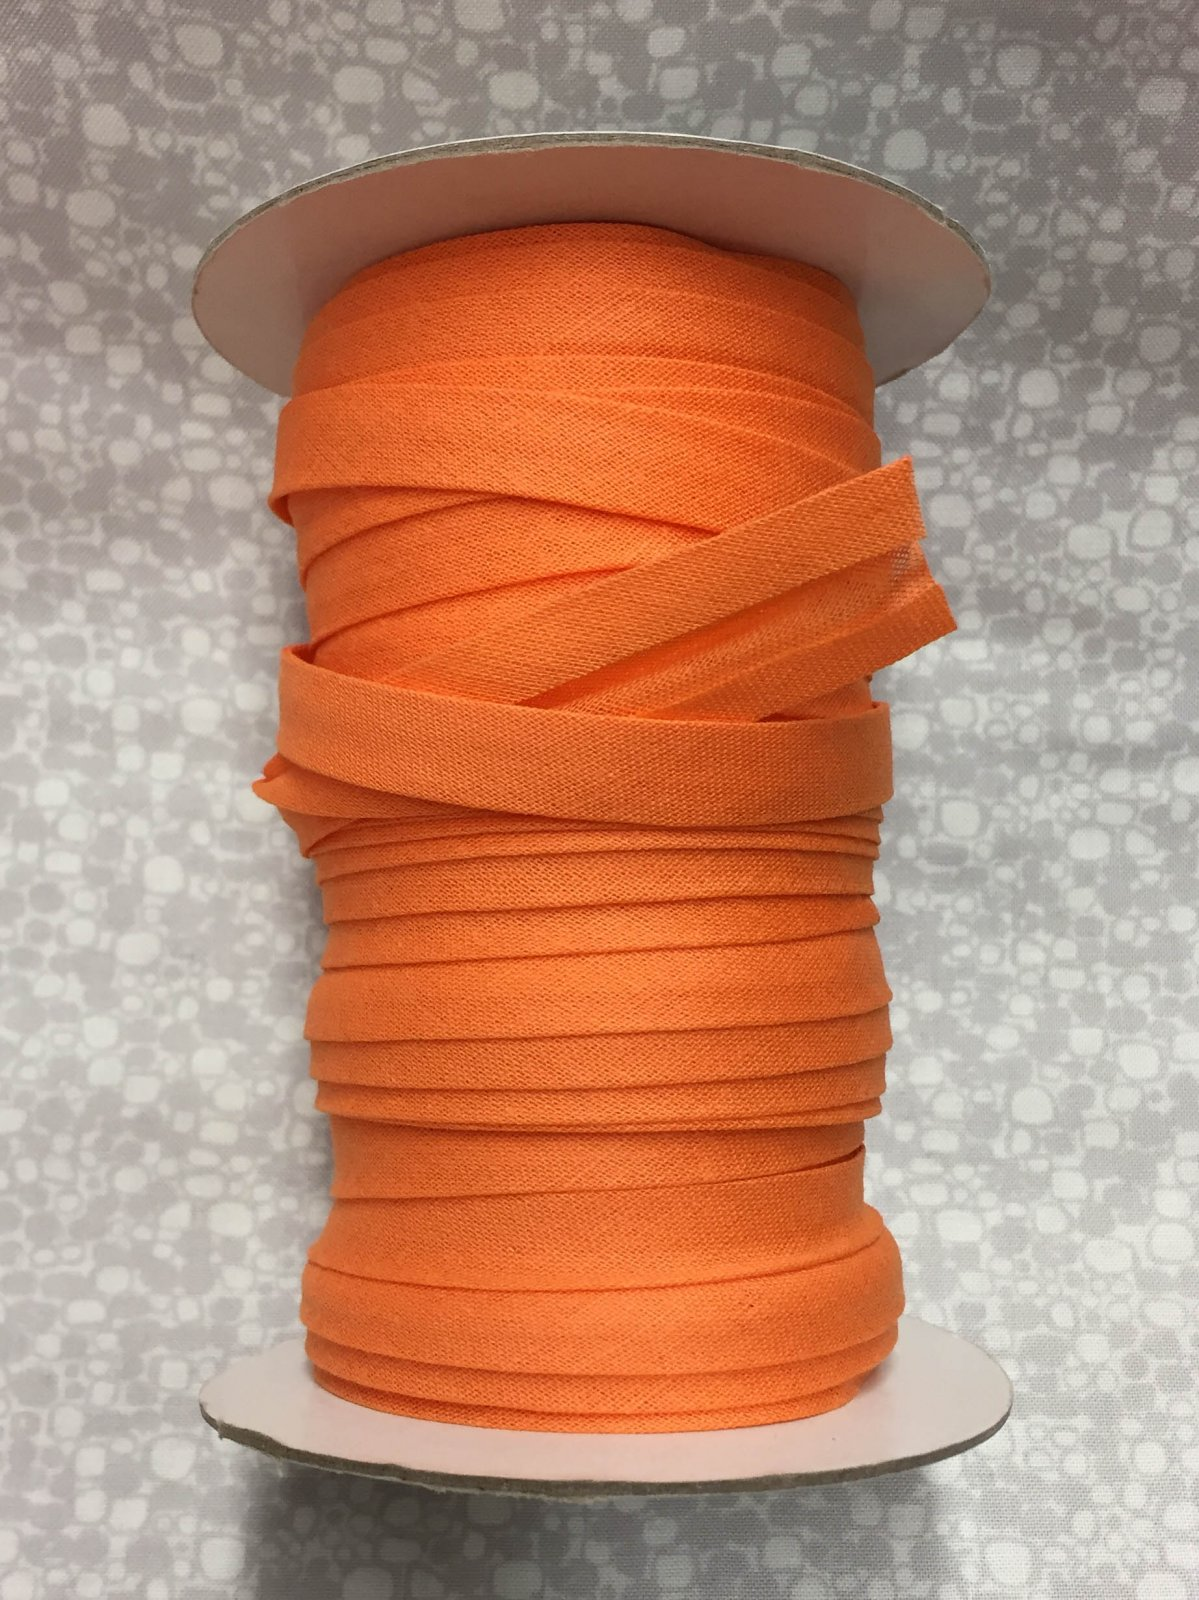 1/2 Finish Double Fold Economy Bias Binding, 10yd - Orange